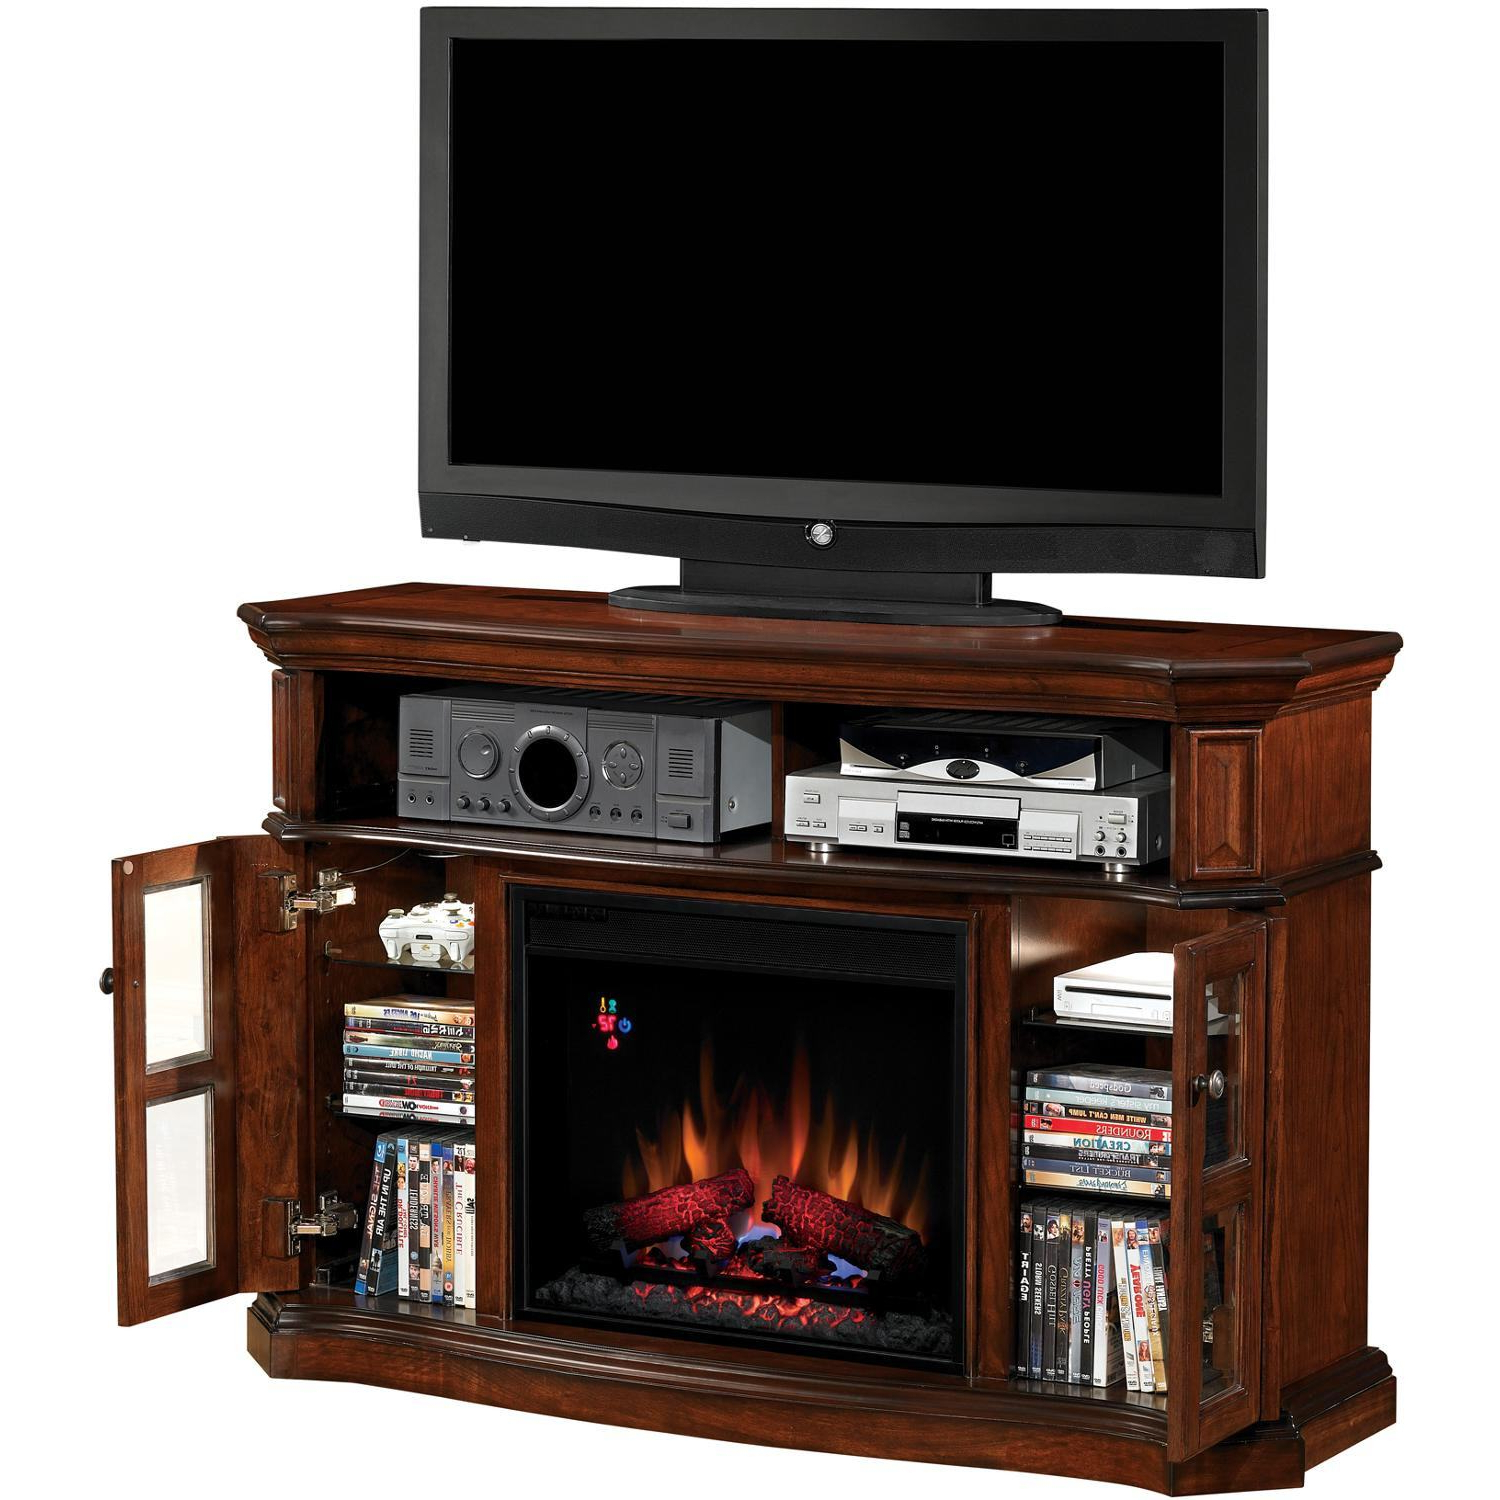 25 Creative 54 Inch Tv Stand Pictures | Cakestandlady With Regard To Sinclair White 54 Inch Tv Stands (View 20 of 20)